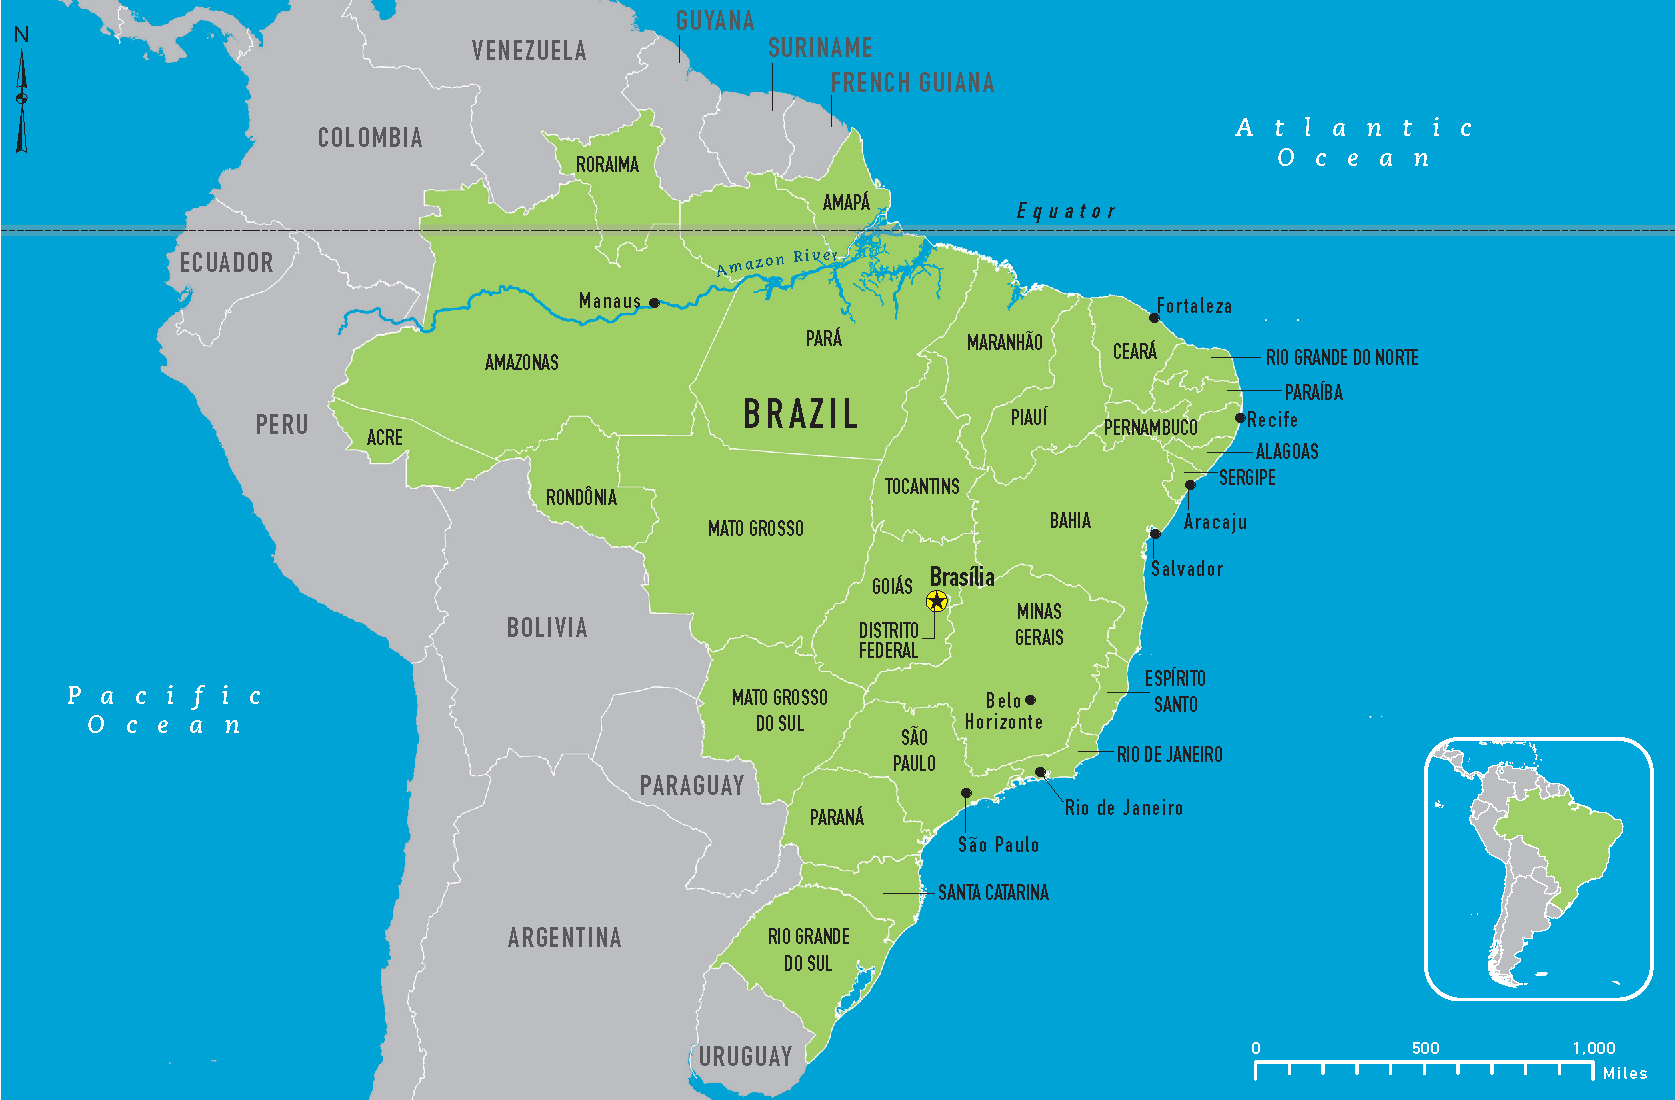 brazil map Free Large Images mapas Pinterest Brazil